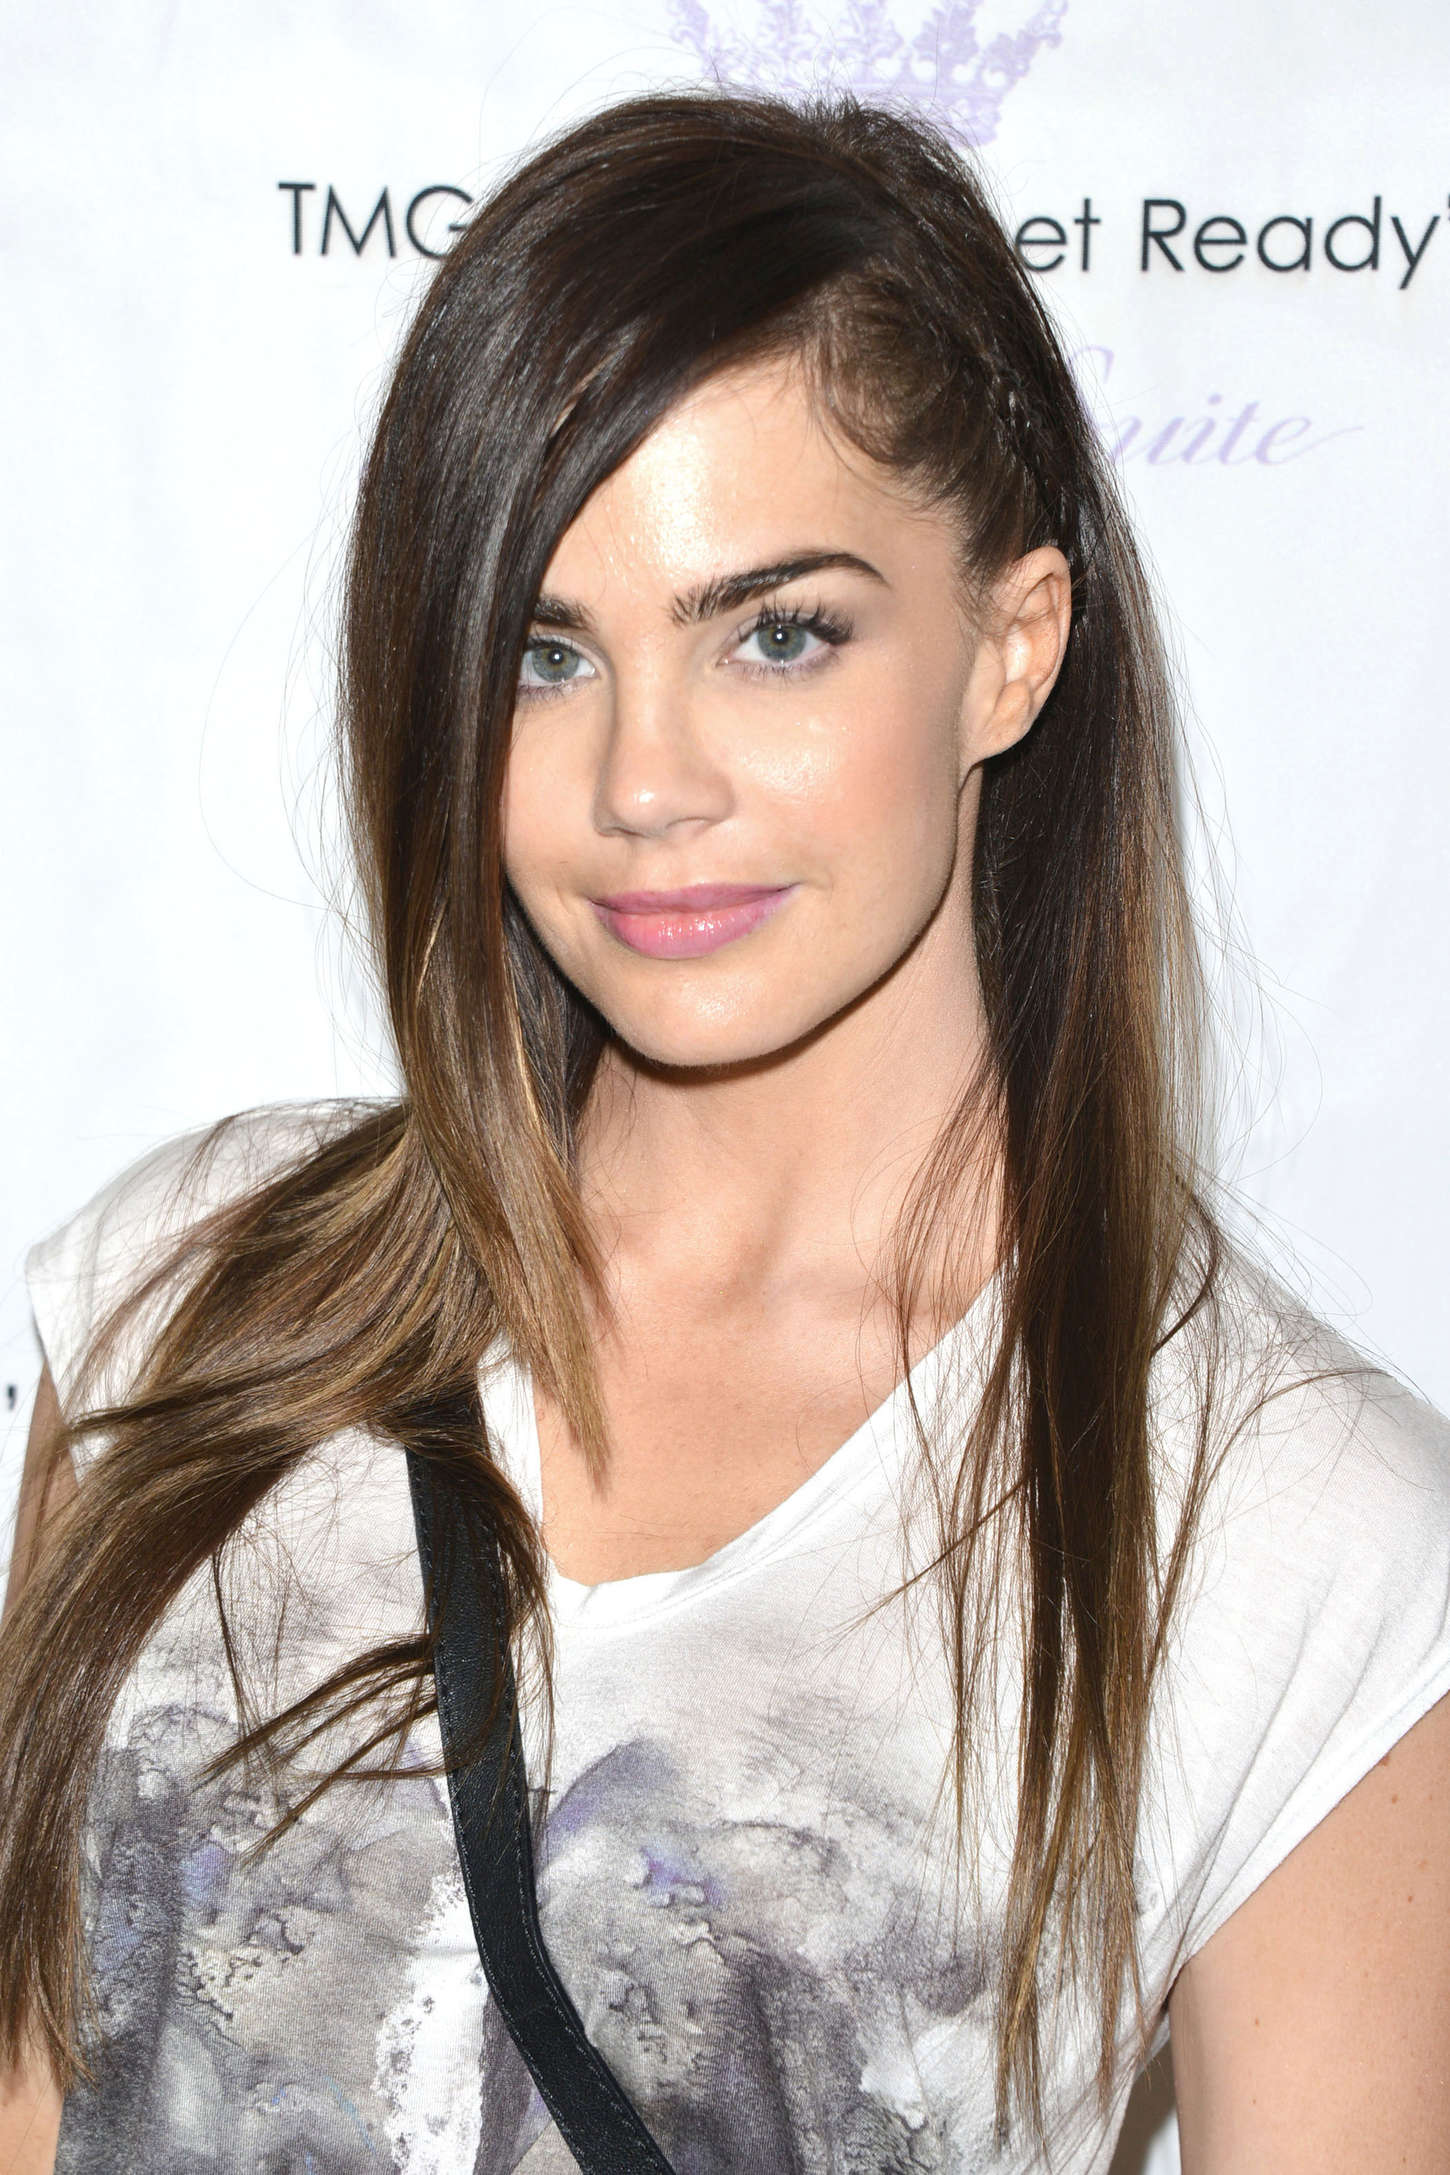 Jillian Murray TMG International 2015 Red Carpet Ready